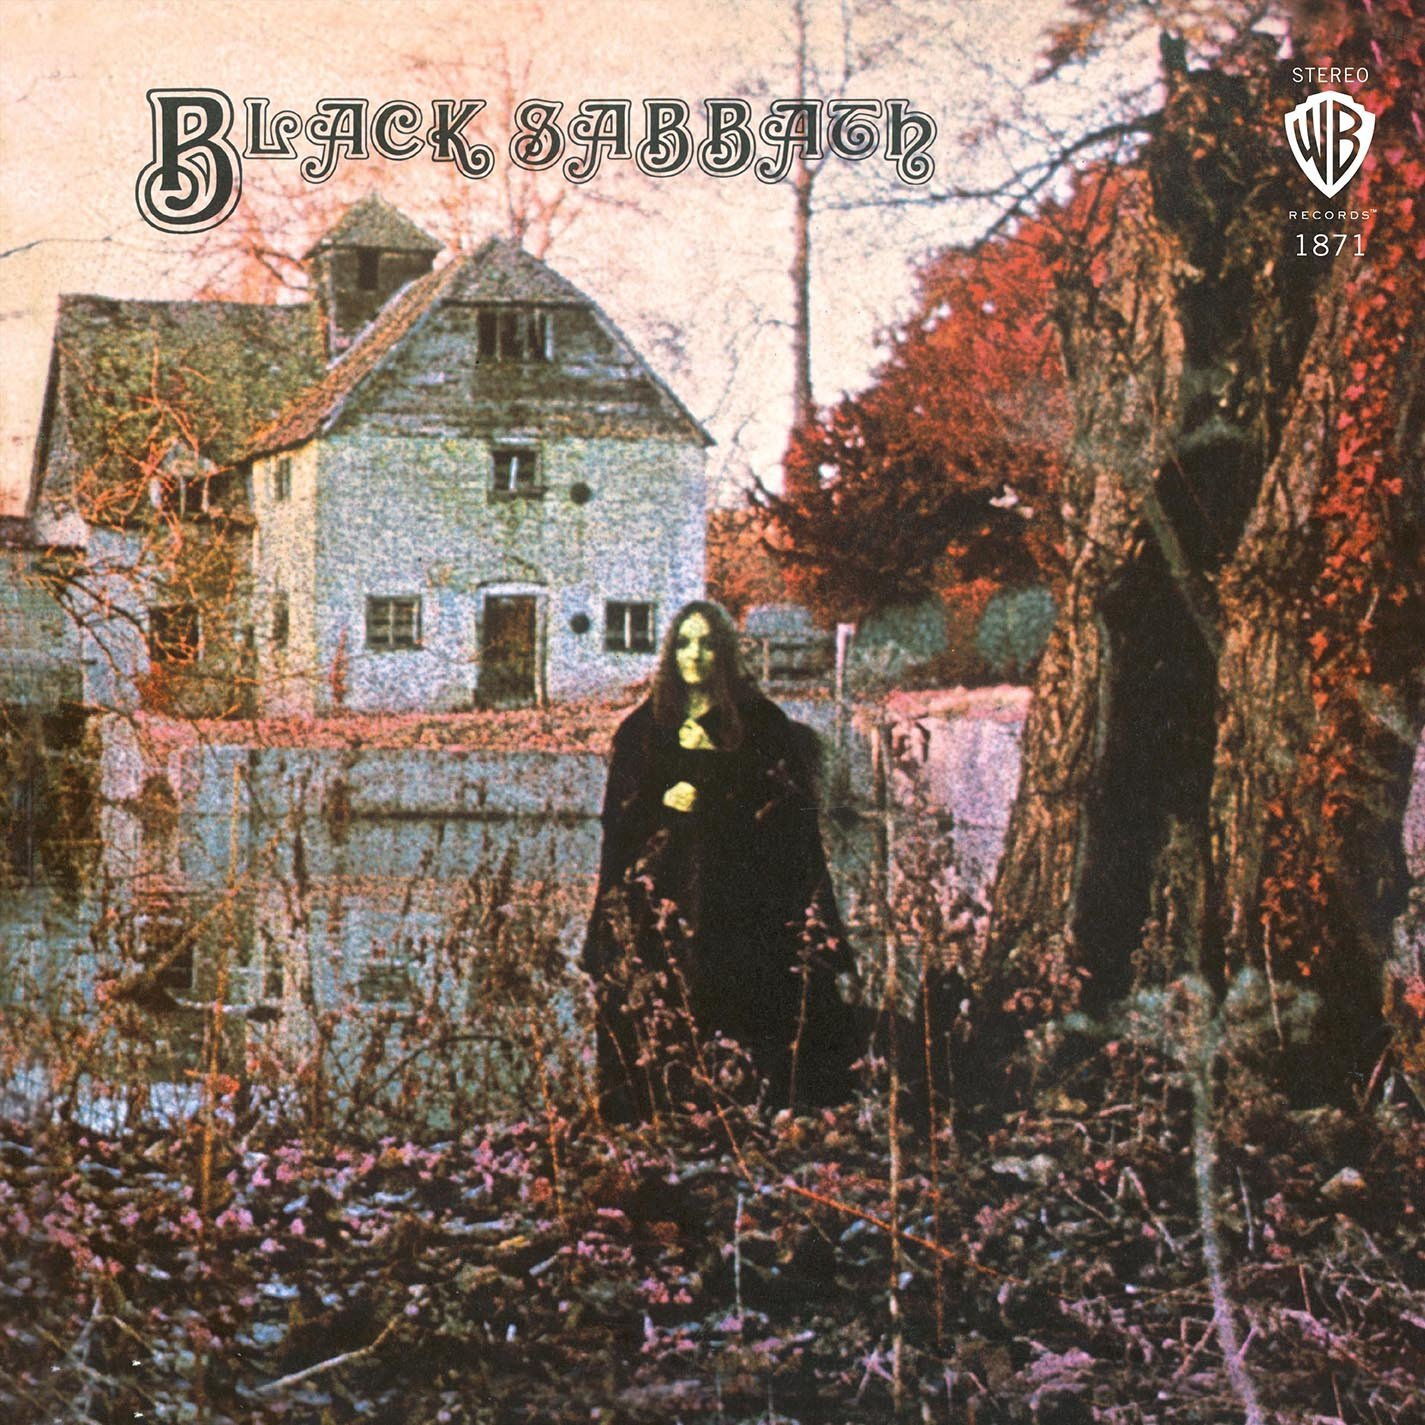 TAK KUTO METAL -BLACK SABBATH, BLACK SABBATH (1970)